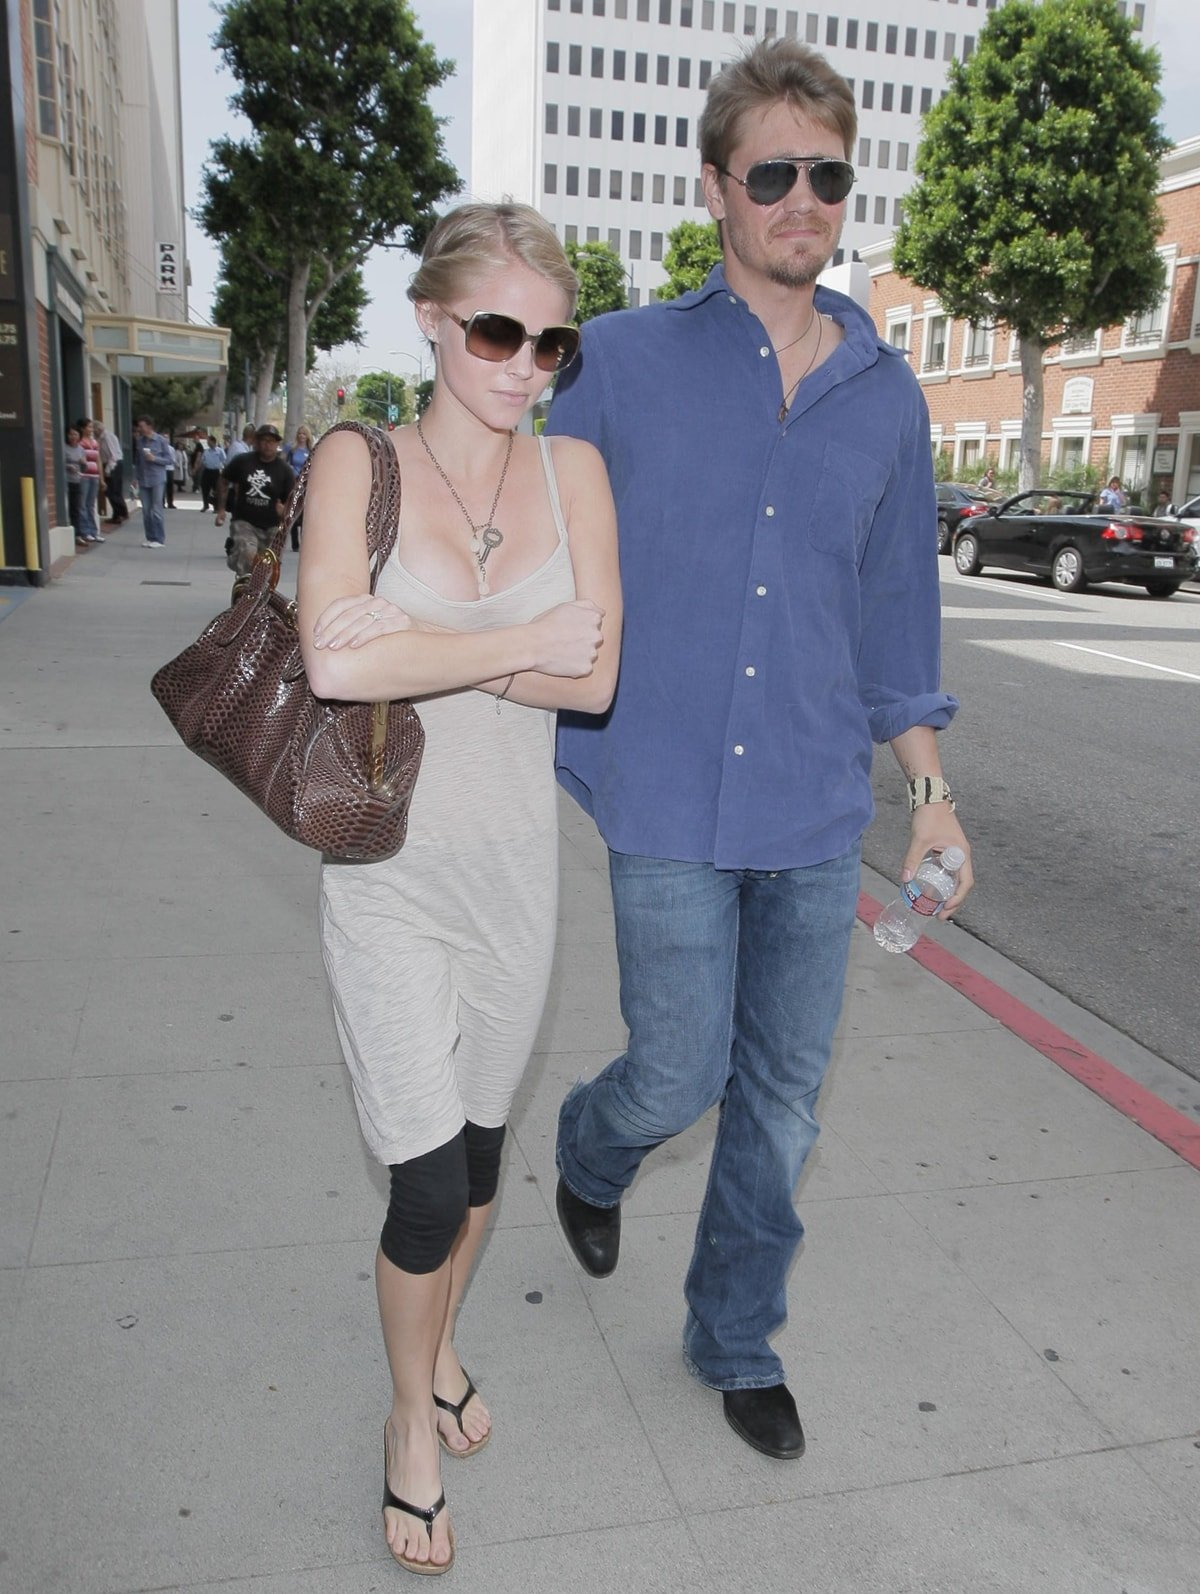 Chad Michael Murray split from fiancée Kenzie Dalton in September 2013 after a seven-year engagement